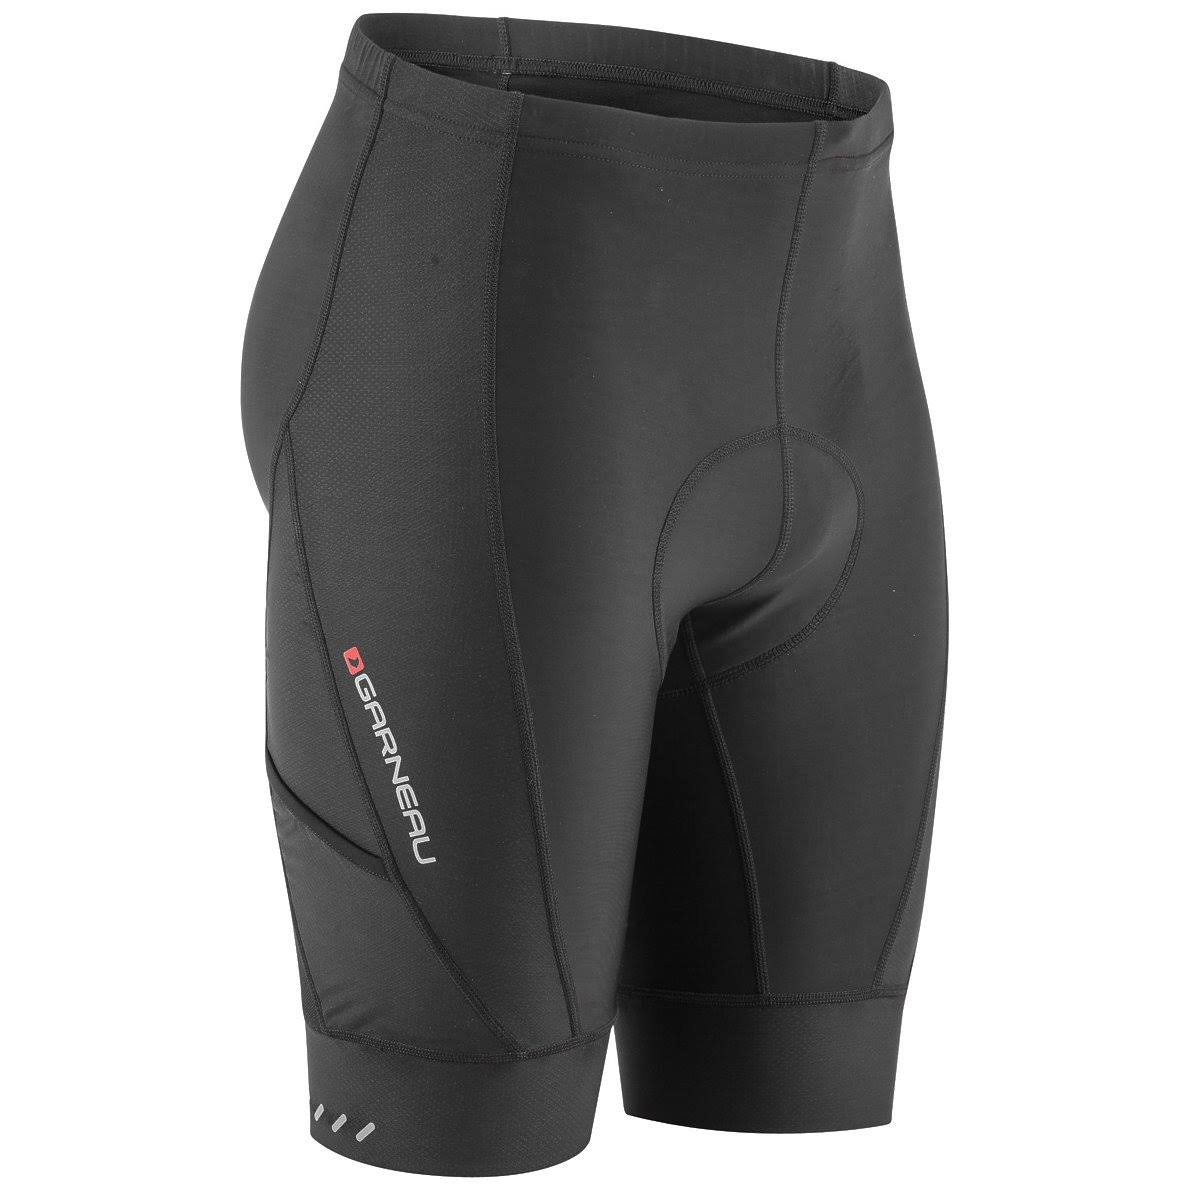 Louis Garneau Men's Optimum Bike Shorts, Black, XL